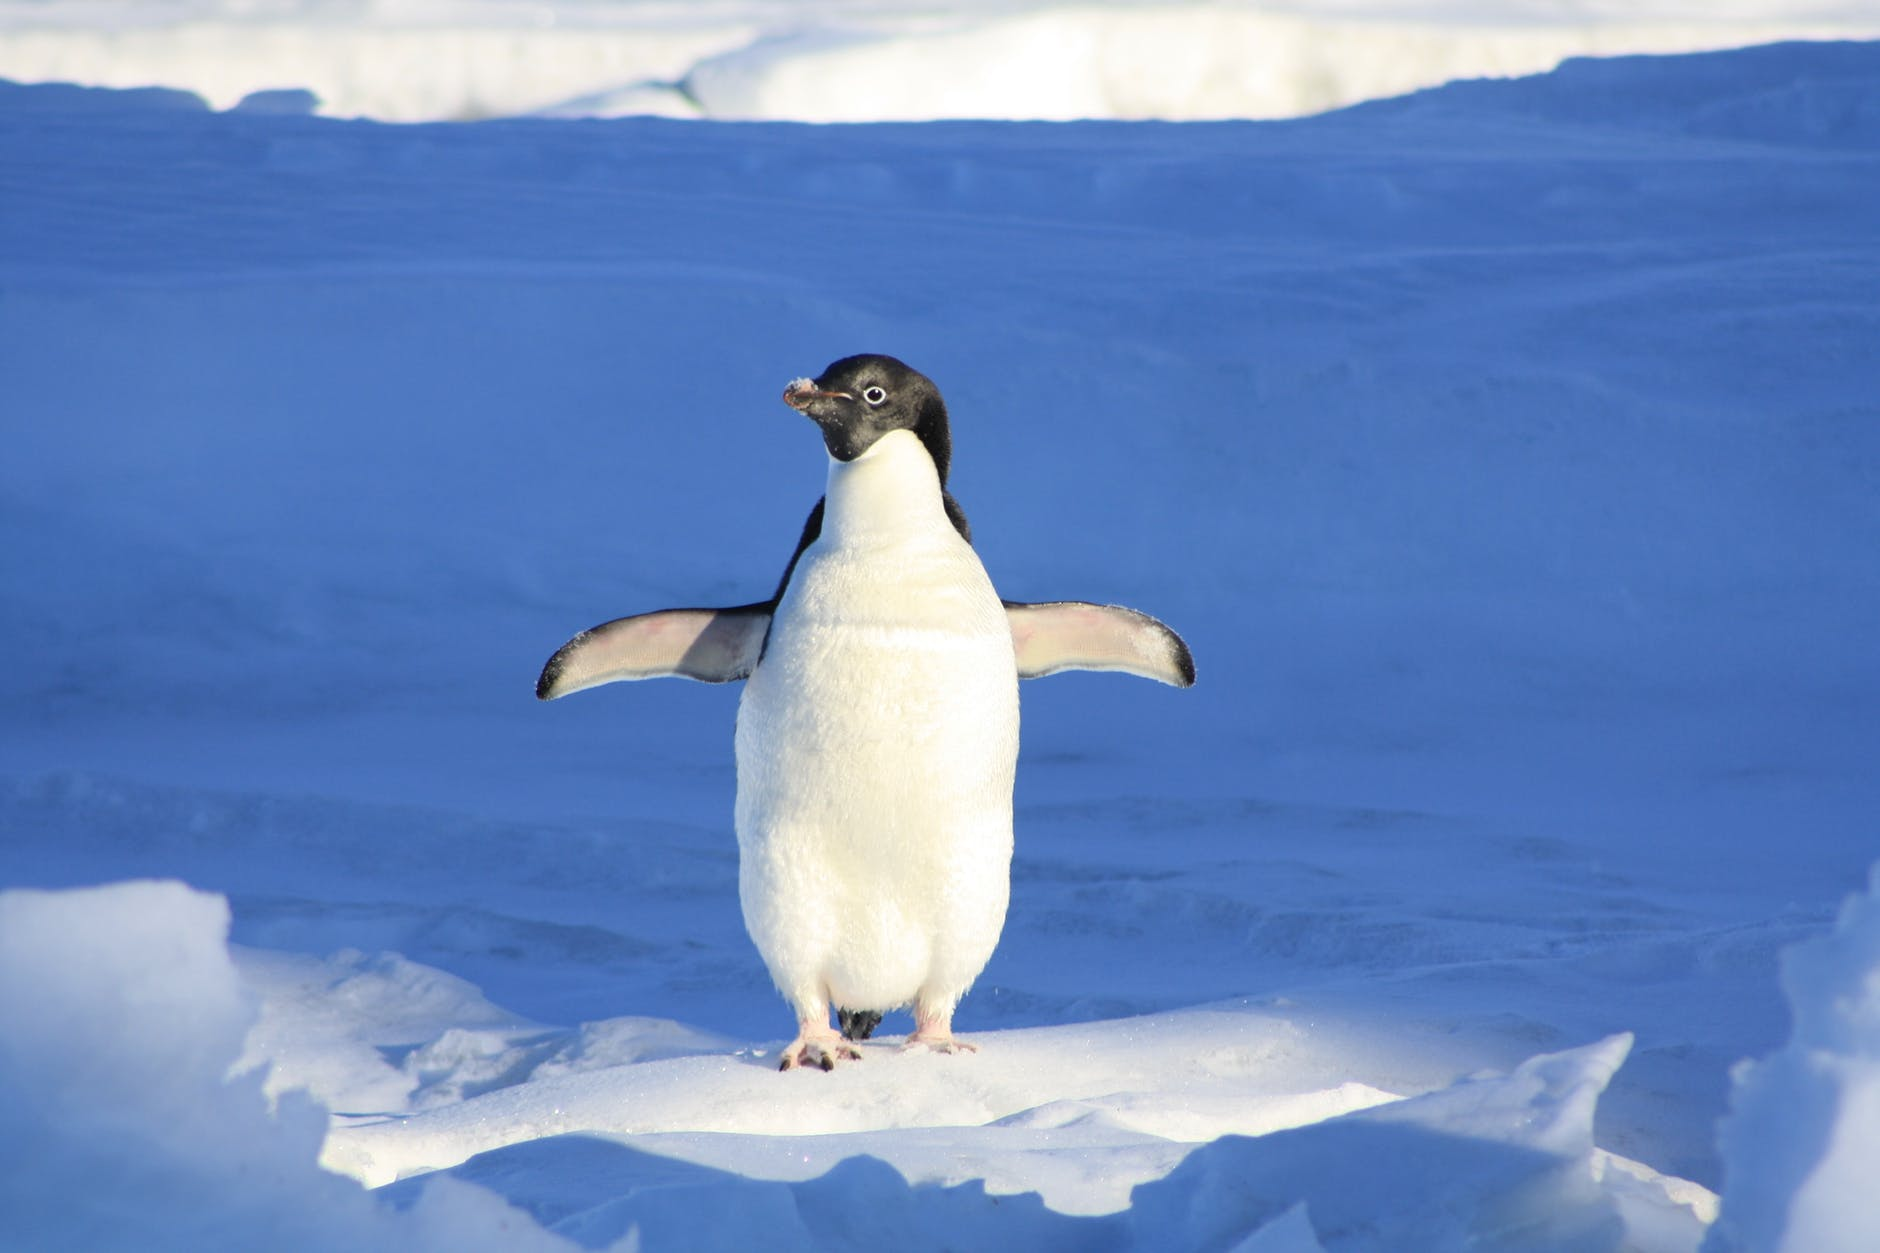 A penguin with its wings spread against a snow background.